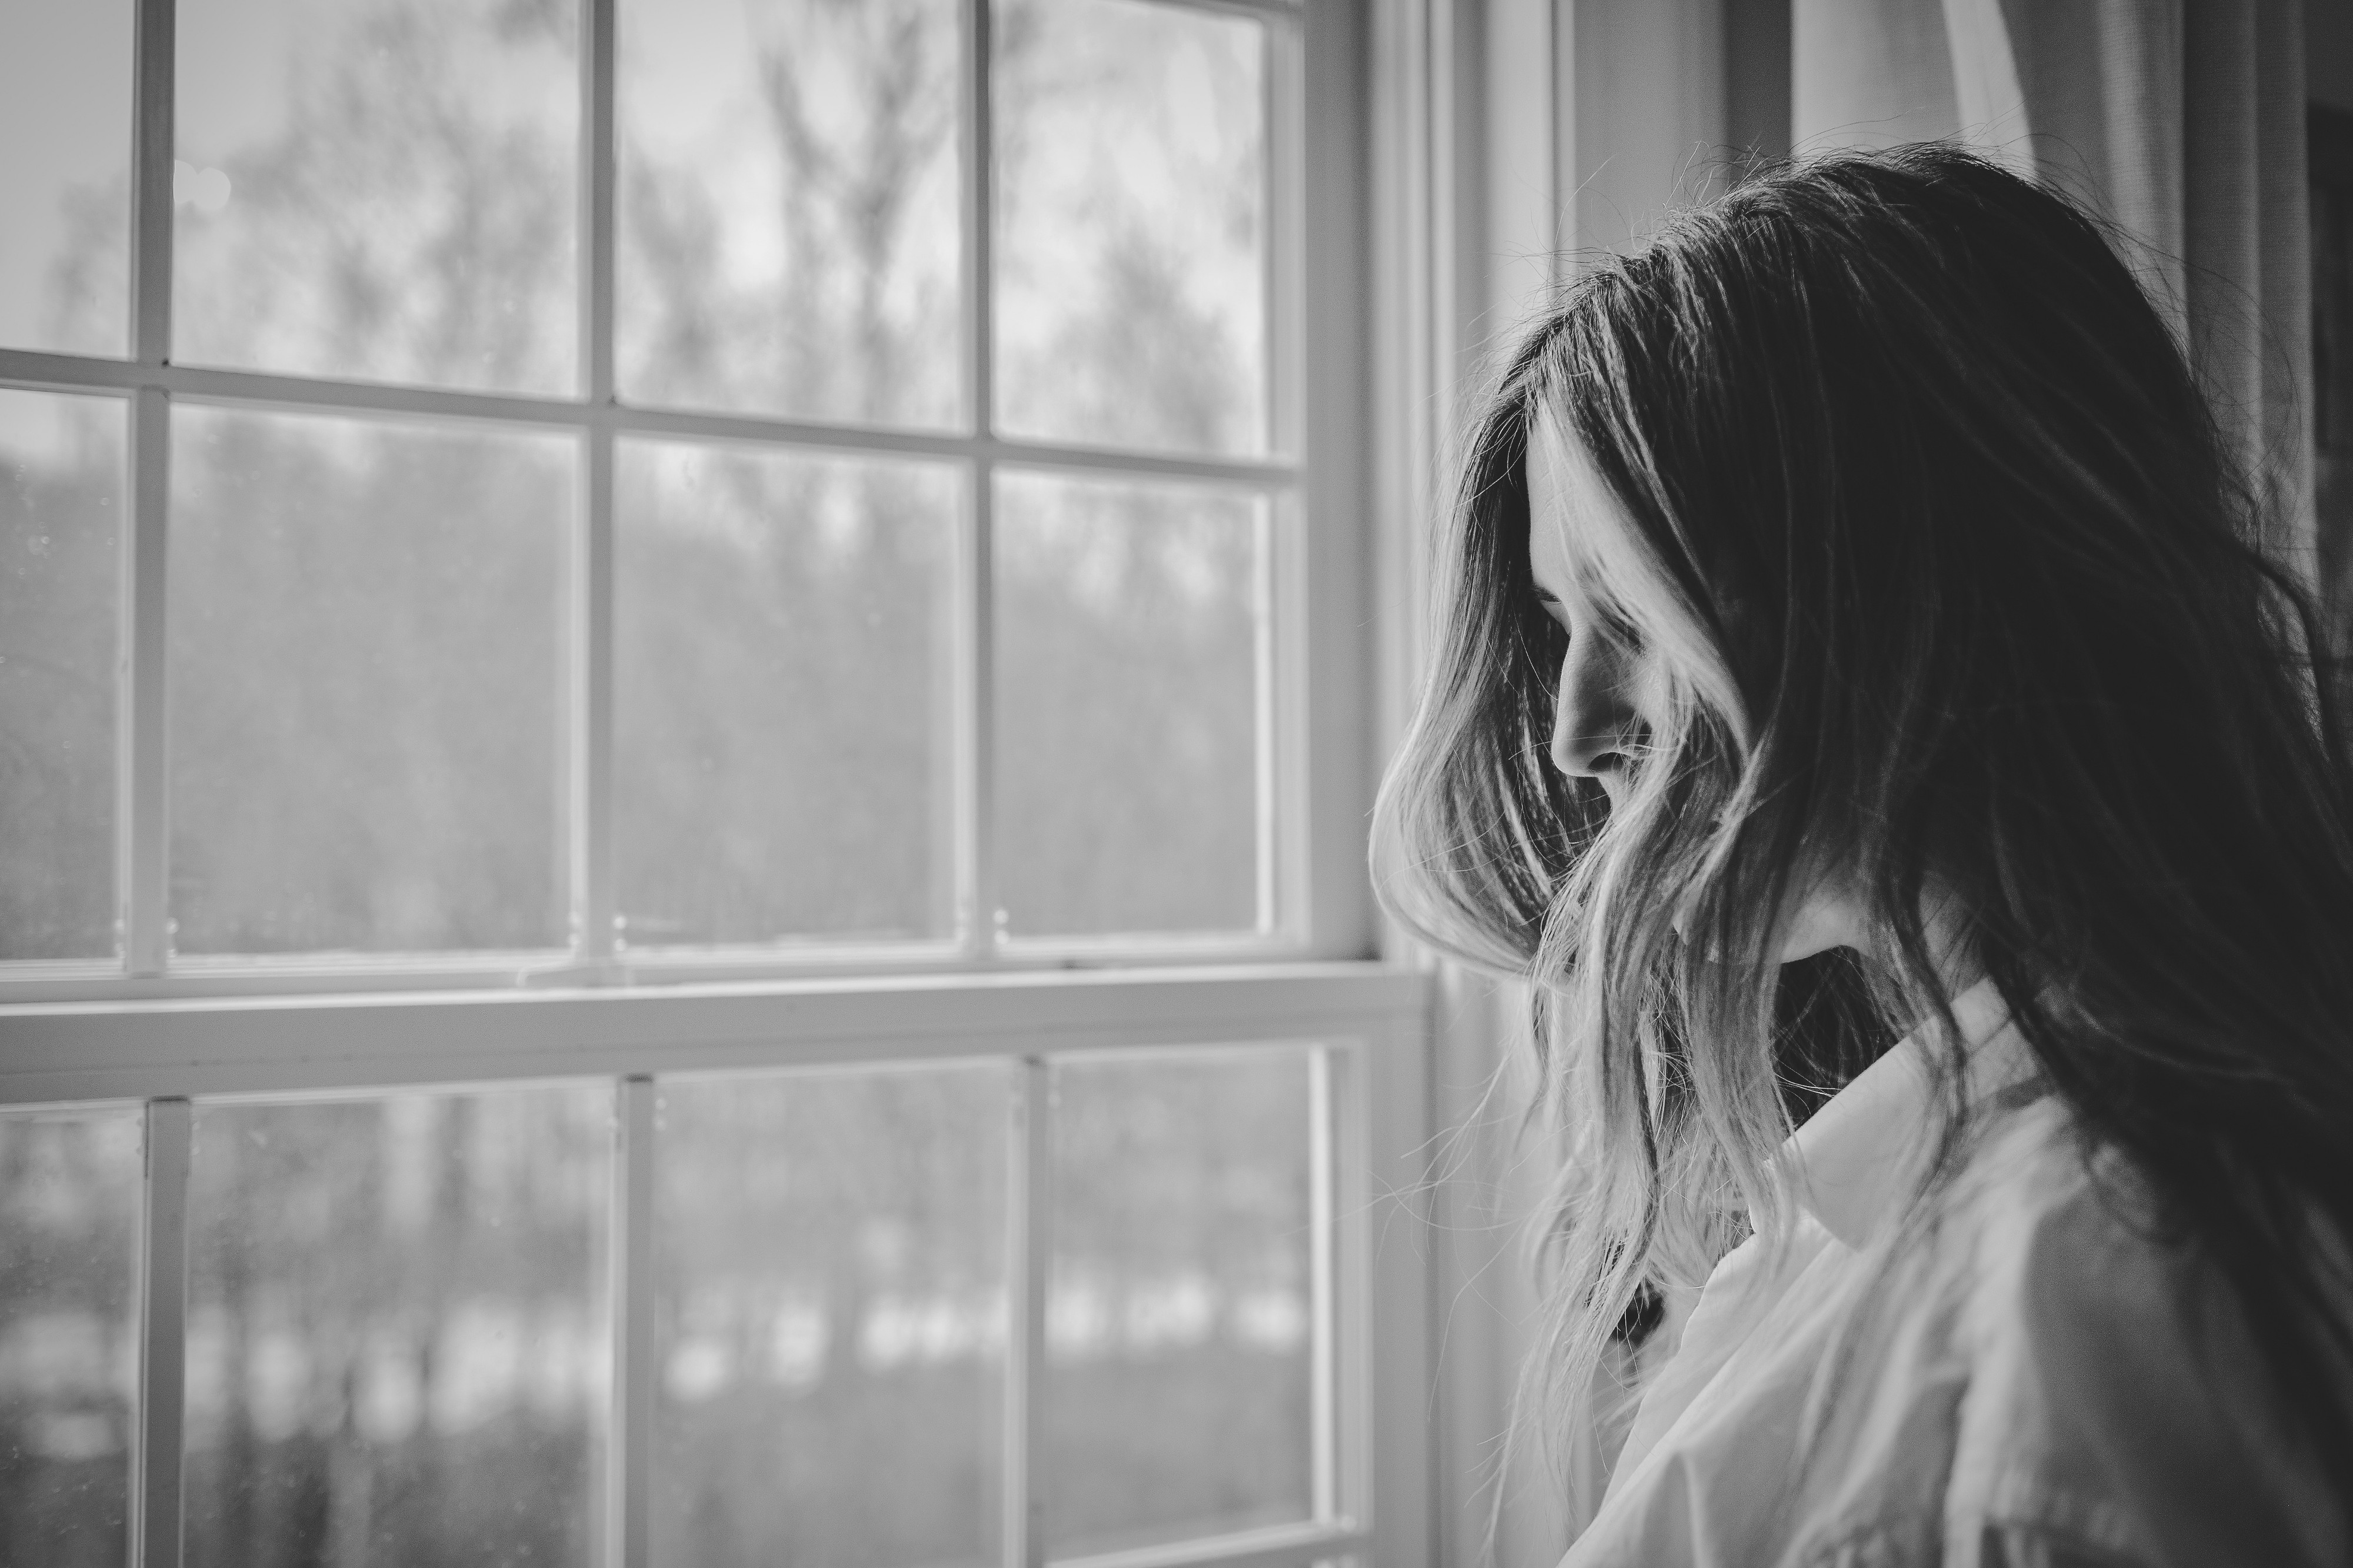 Black and white photo of a woman standing alone looking out a window pane to the faint world outside but not really seeing it